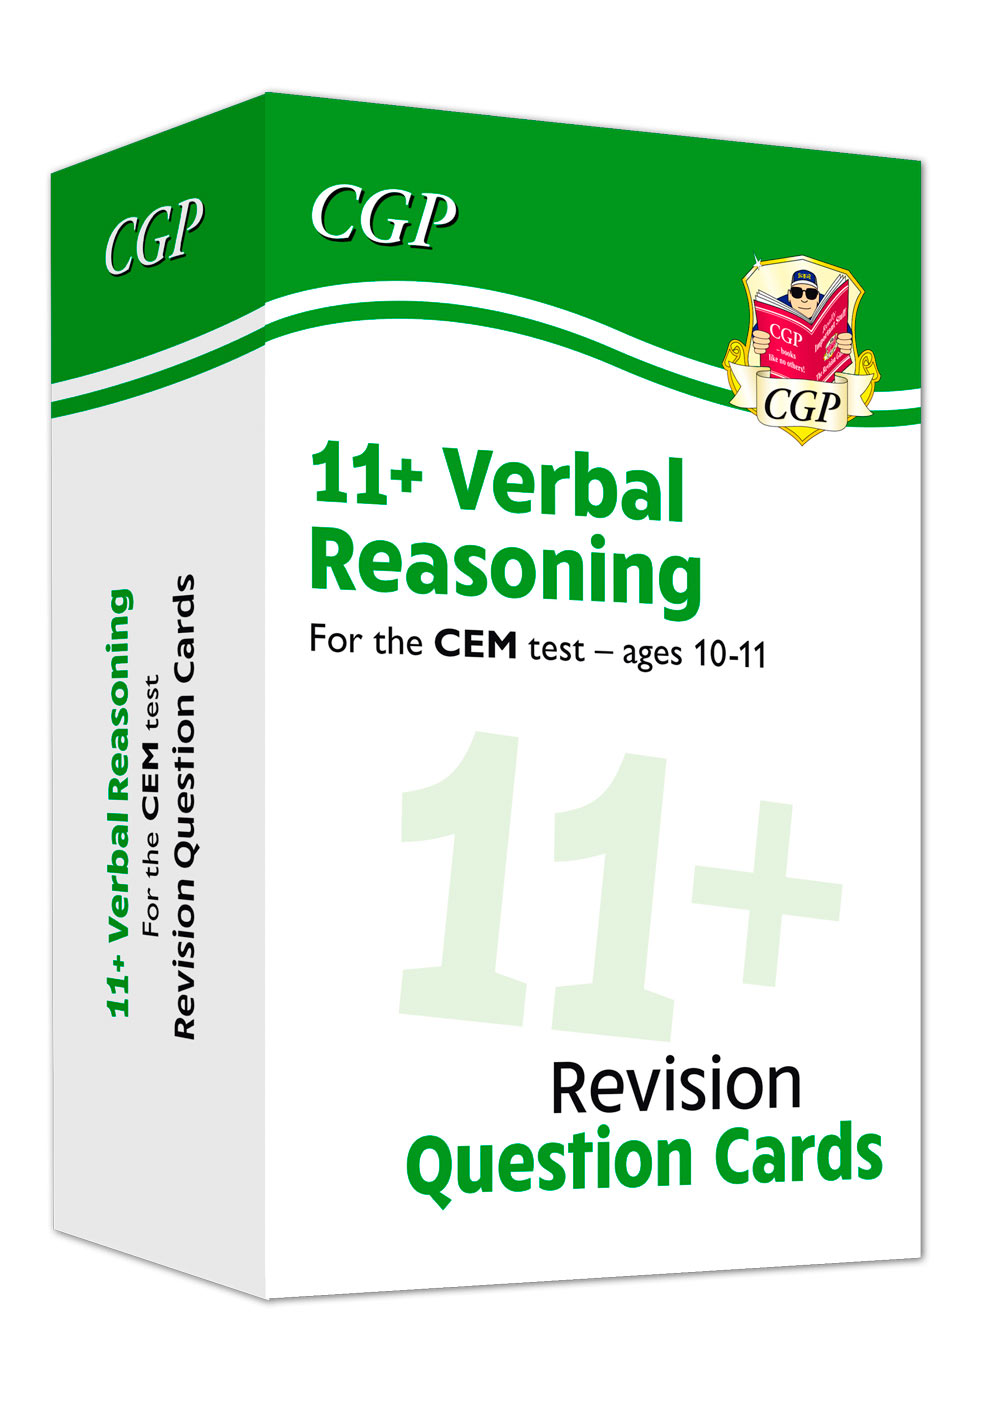 V6FDE1 - New 11+ CEM Verbal Reasoning Practice Question Cards - Ages 10-11